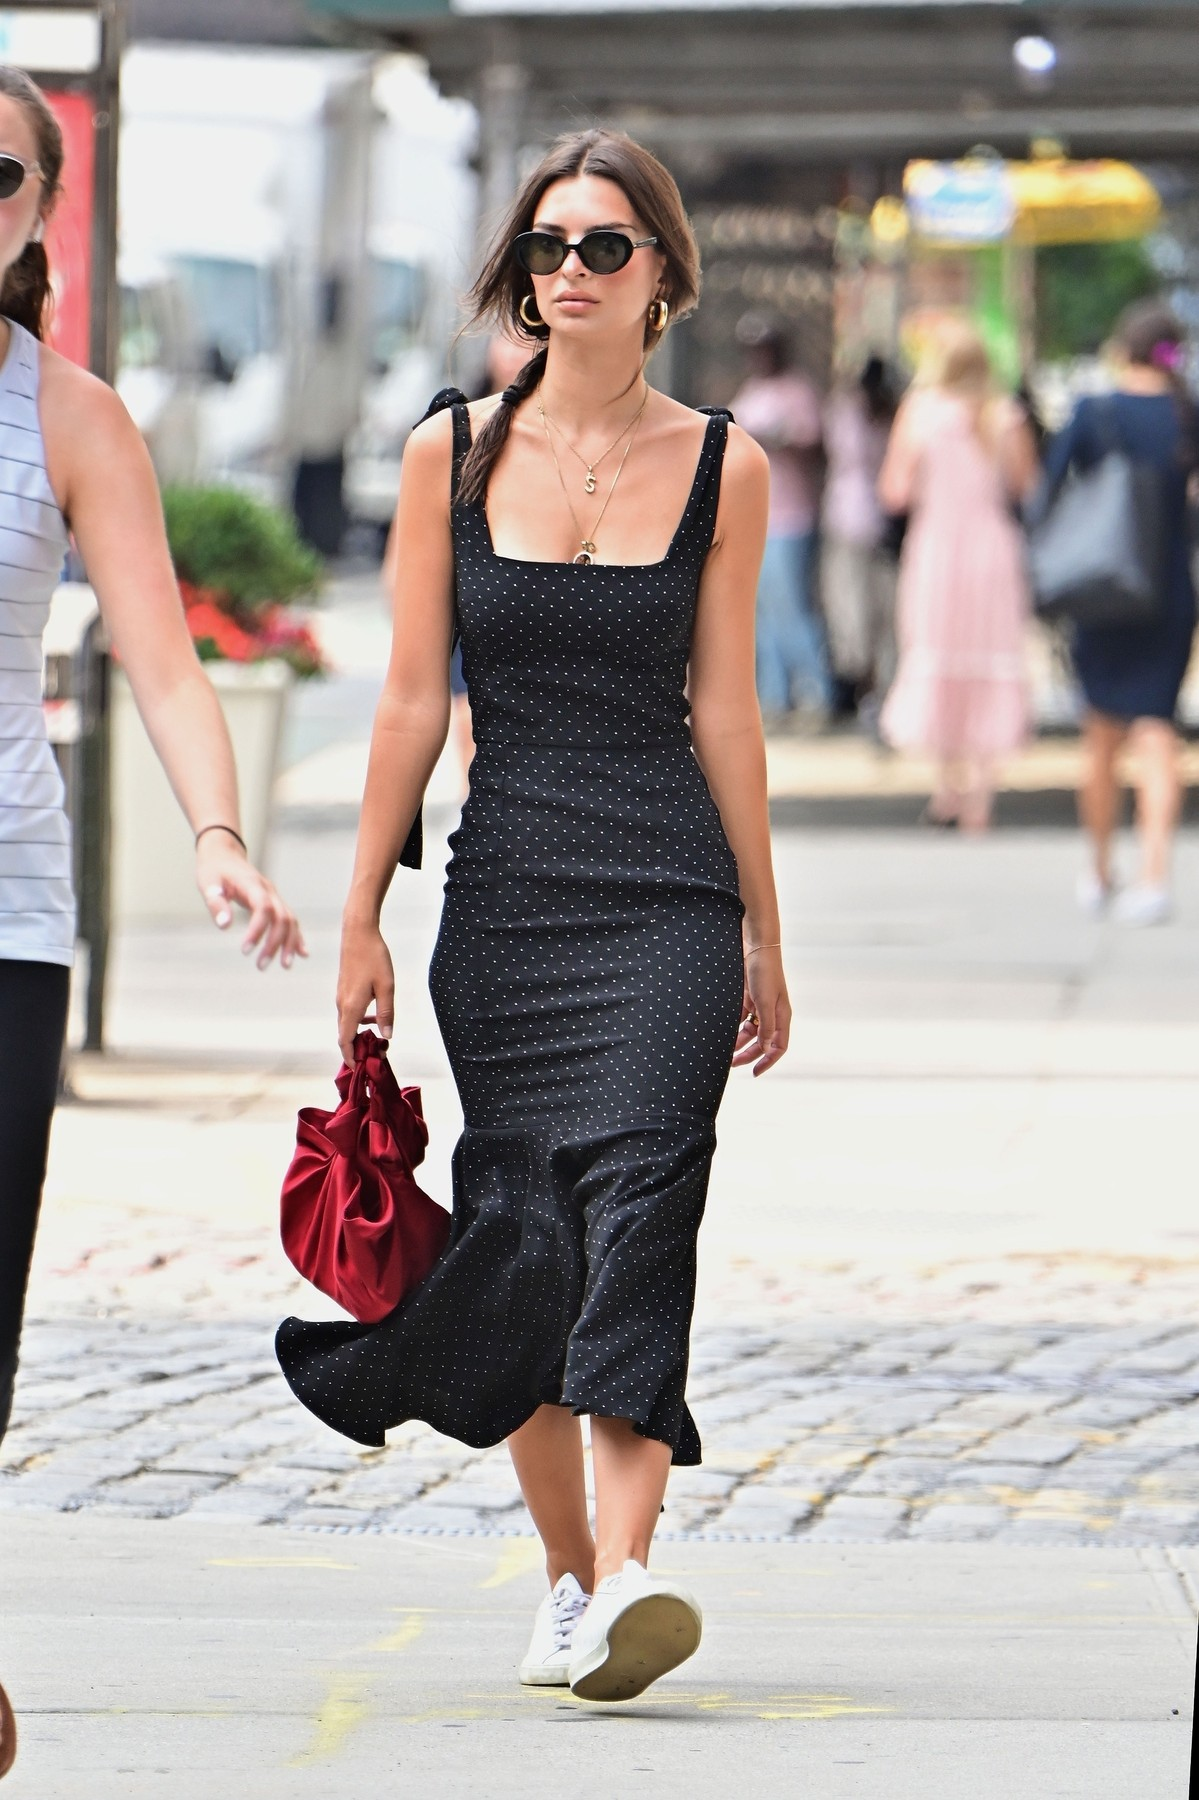 New York, NY  - Model, Emily Ratajkowski looks stylish in a black polka dot dress as she runs her early morning errands in New York. Emily is seen wearing a necklace with an 'S' pendant to represent her love for husband Sebastian Bear-McClard.  BACKGRID USA 19 AUGUST 2019, Image: 466117007, License: Rights-managed, Restrictions: RIGHTS: WORLDWIDE EXCEPT IN FRANCE, GERMANY, POLAND, Model Release: no, Credit line: Profimedia, Backgrid USA